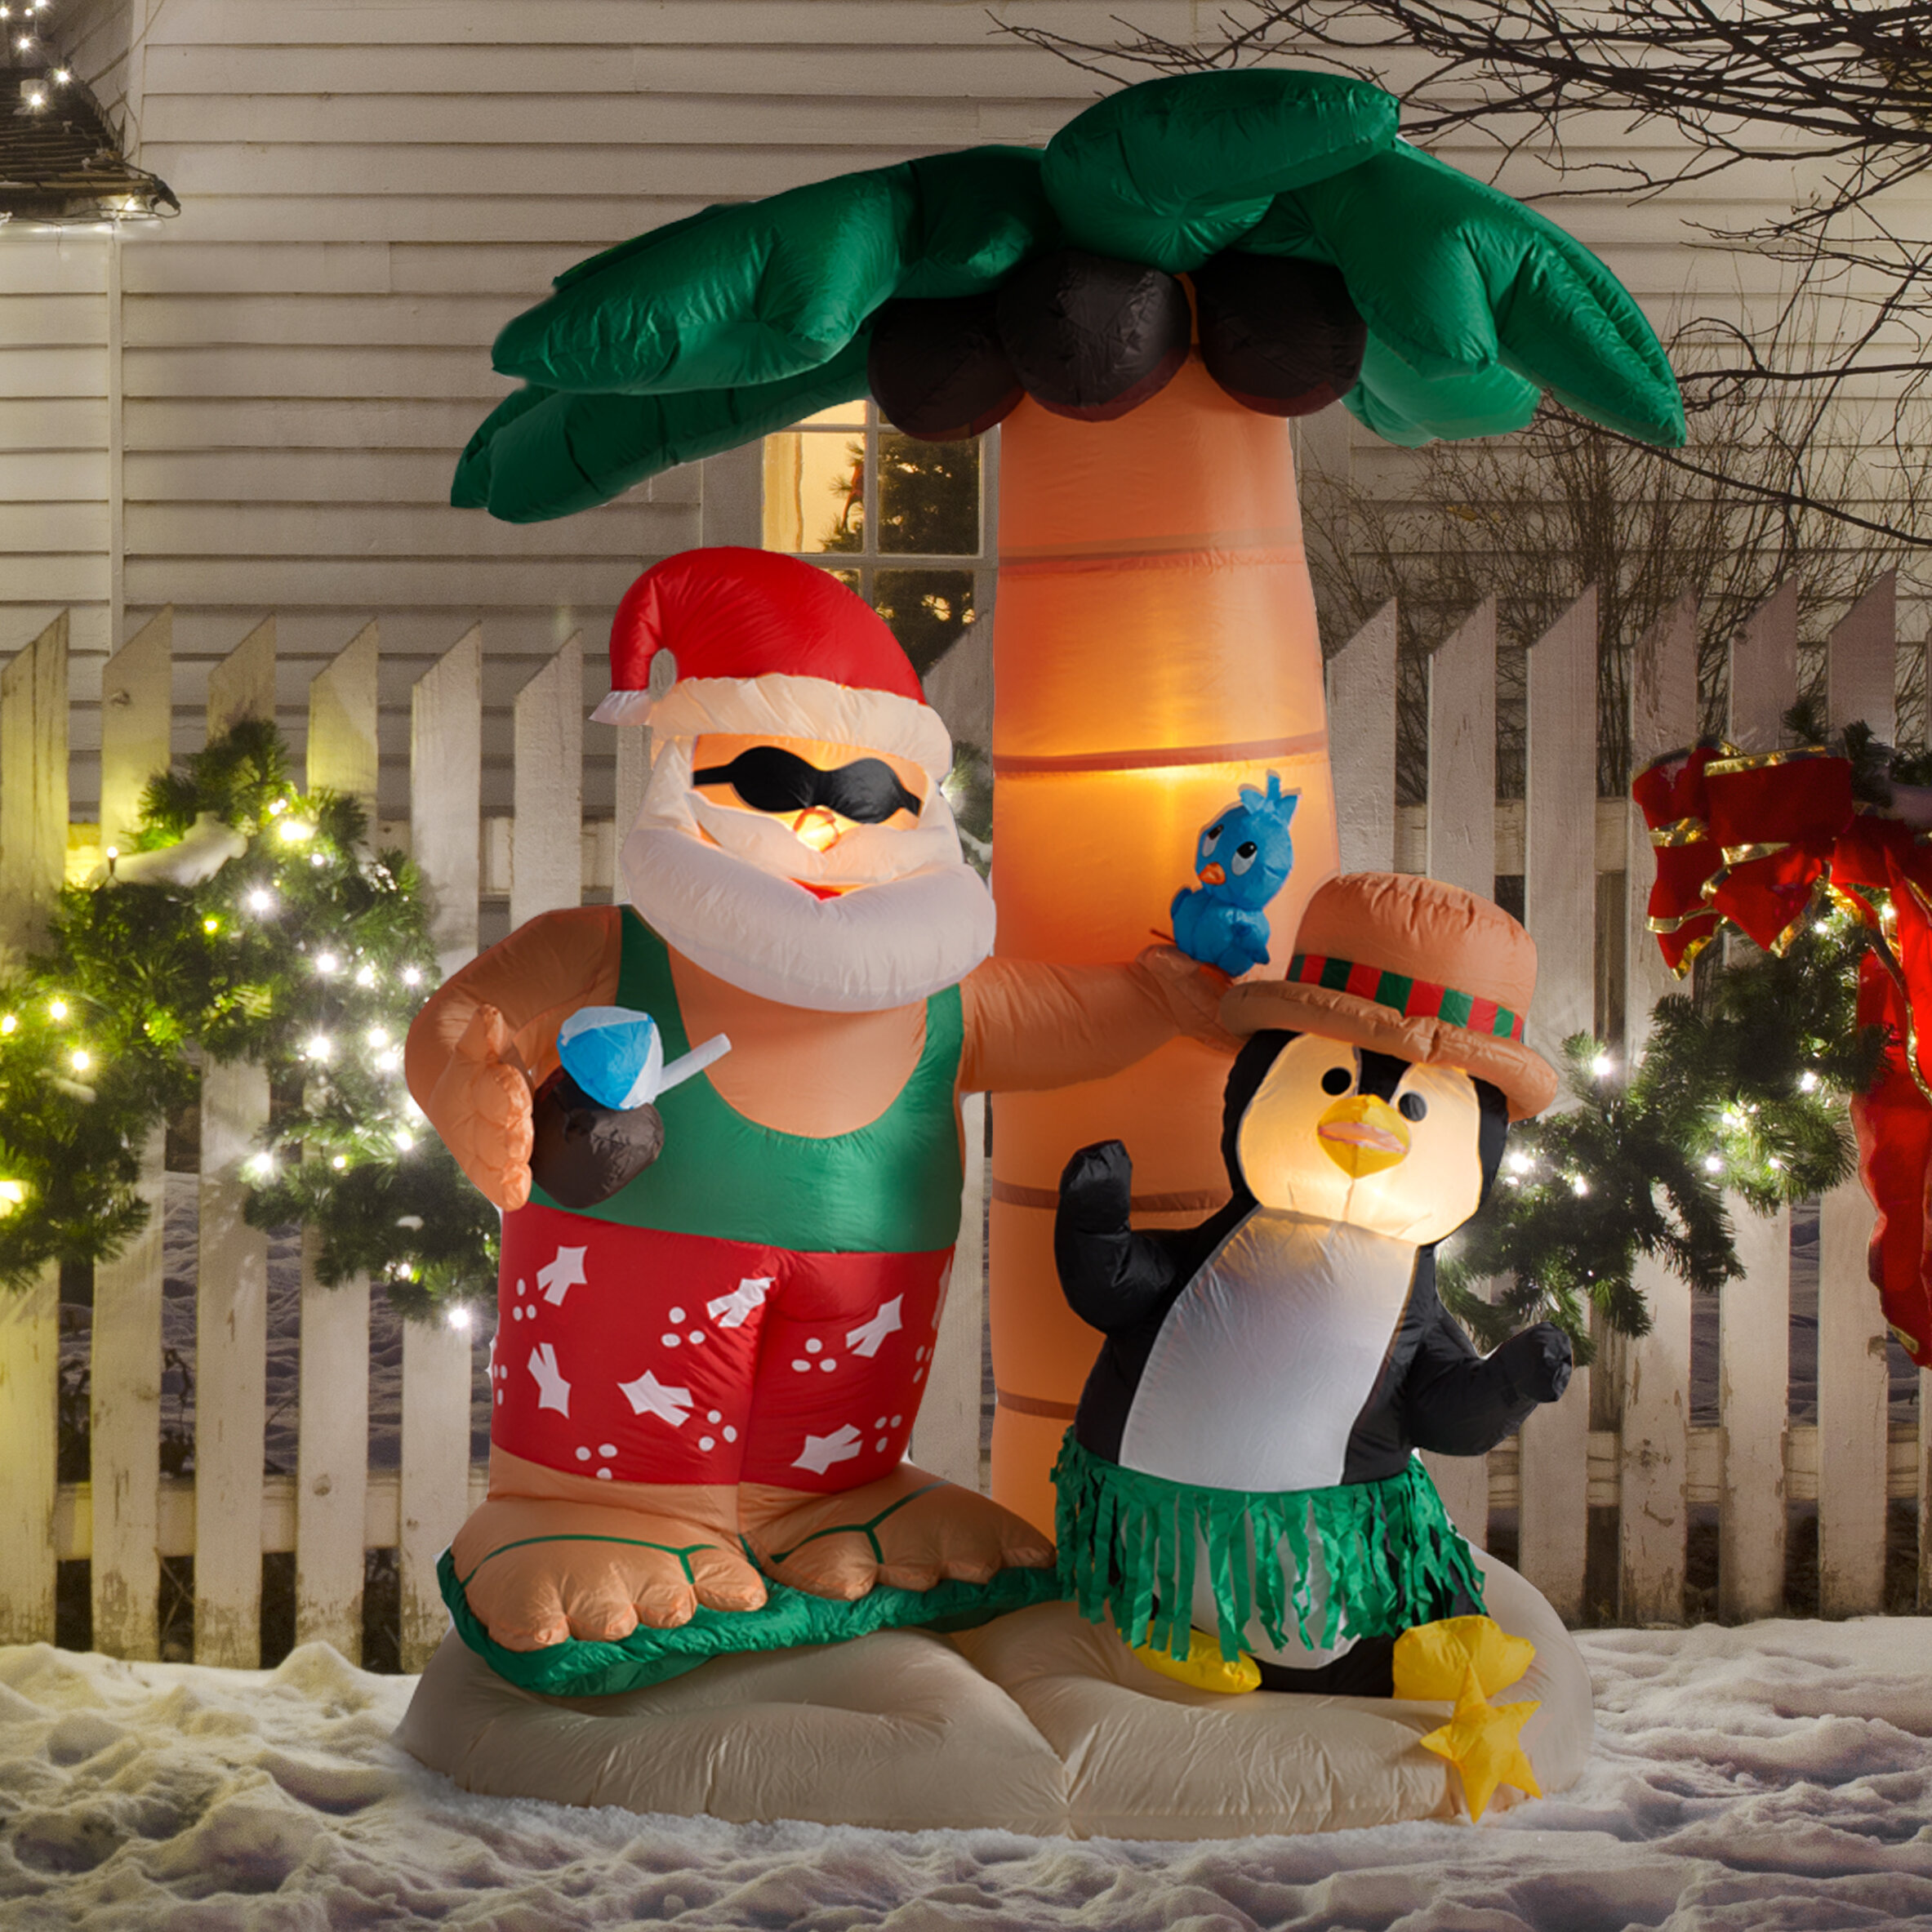 Christmas Inflatable.Christmas Inflatable Santa Claus On Vacation Decoration